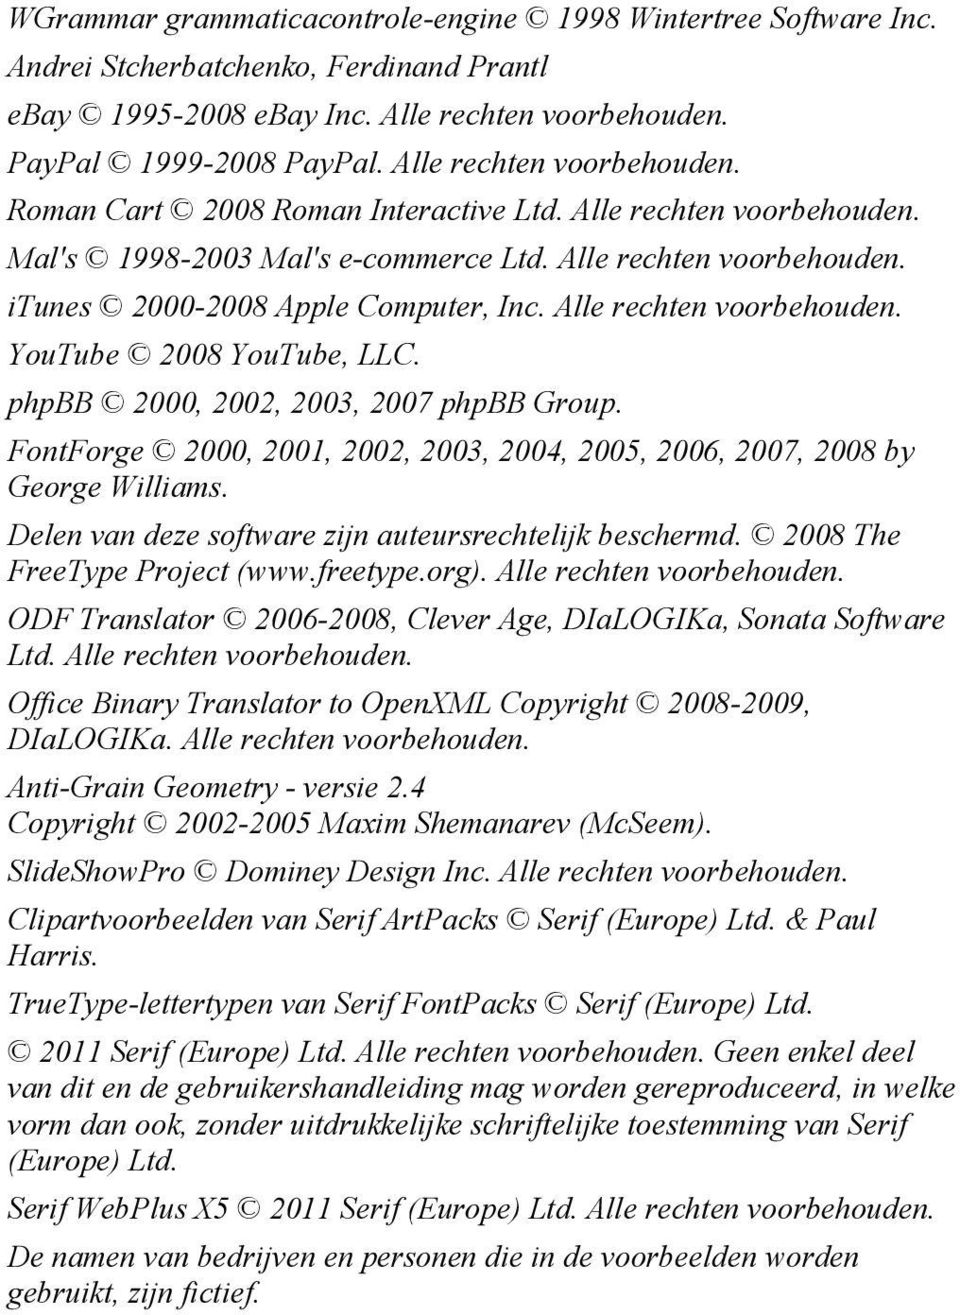 Alle rechten voorbehouden. YouTube 2008 YouTube, LLC. phpbb 2000, 2002, 2003, 2007 phpbb Group. FontForge 2000, 2001, 2002, 2003, 2004, 2005, 2006, 2007, 2008 by George Williams.